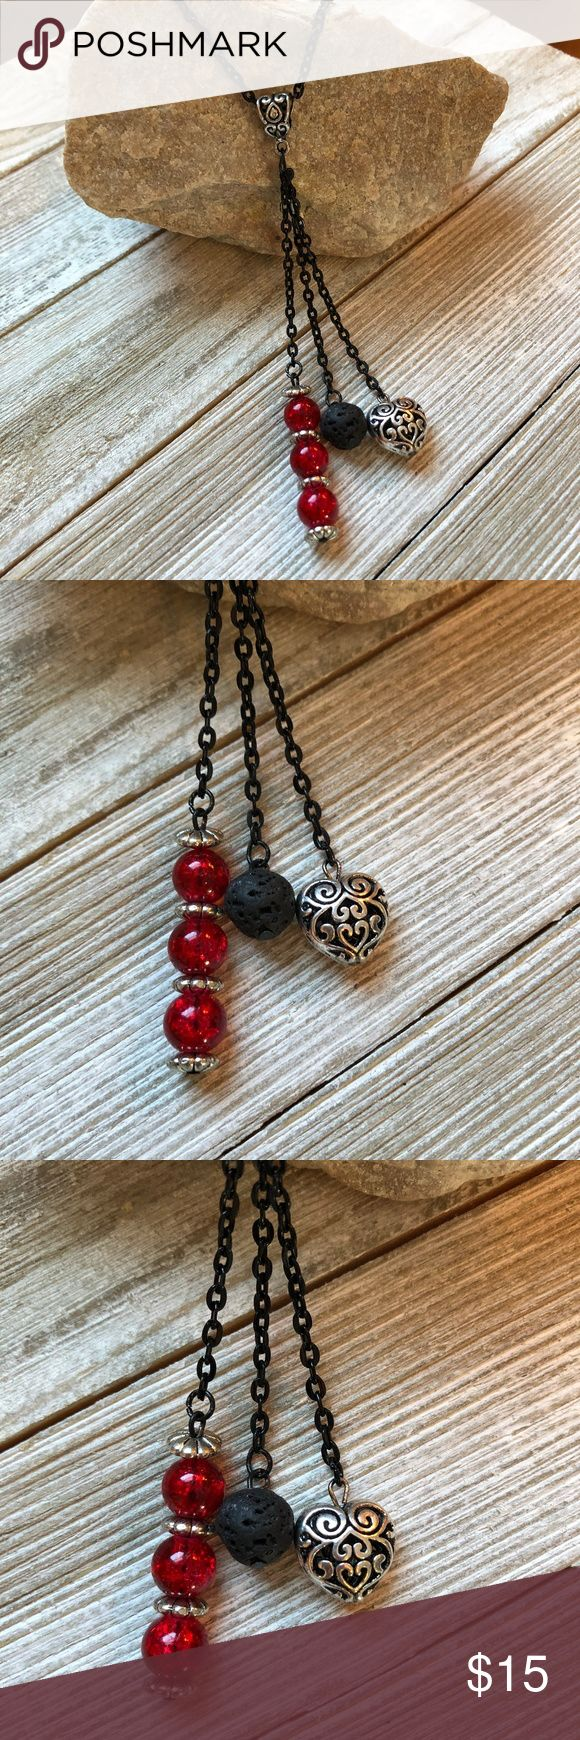 Essential Oil diffuser Necklace glass lava rock 22 inch black chain with 2 inch dangles.  Red Glass Beads, Lava rock bead and metal filigree heart.  Put essential oil on lava rock bead to carry aroma with you!  Essential oils available on my website shown in banner at top of my closet, click it to go to my site. Lisa Halstead Jewelry Necklaces